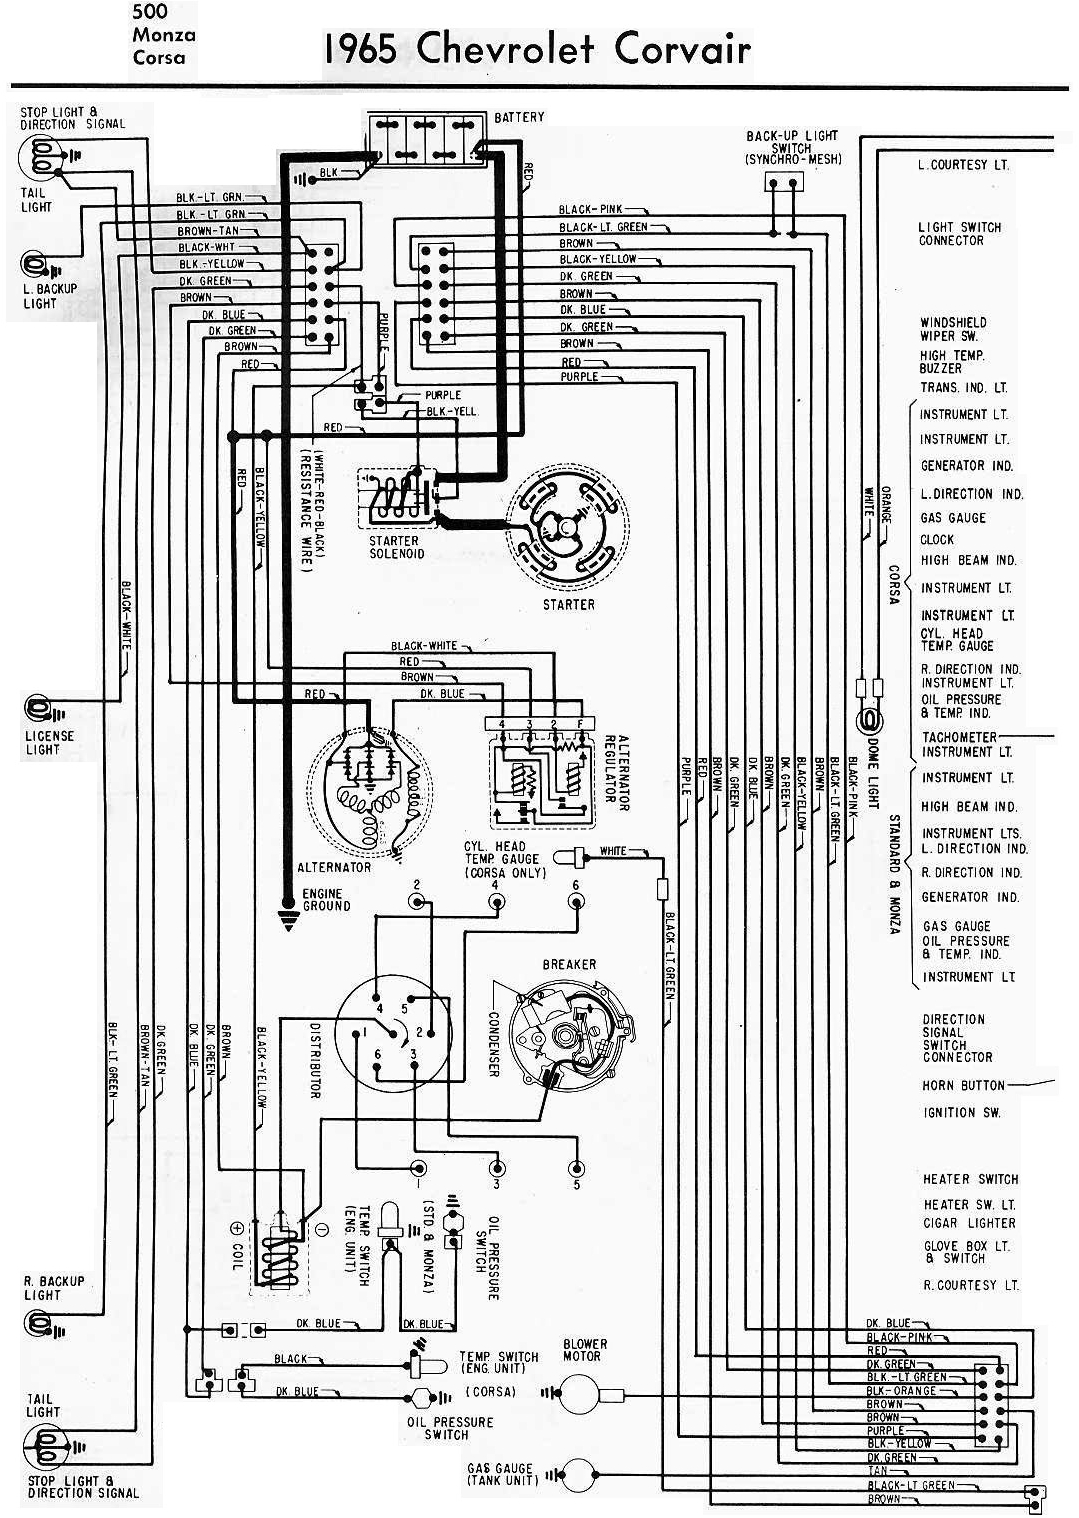 1965+Chevrolet+Corvair+Electrical+Wiring+Diagram 1965 chevrolet corvair electrical wiring diagram all about light switch diagram 1960 chevy pickup at soozxer.org